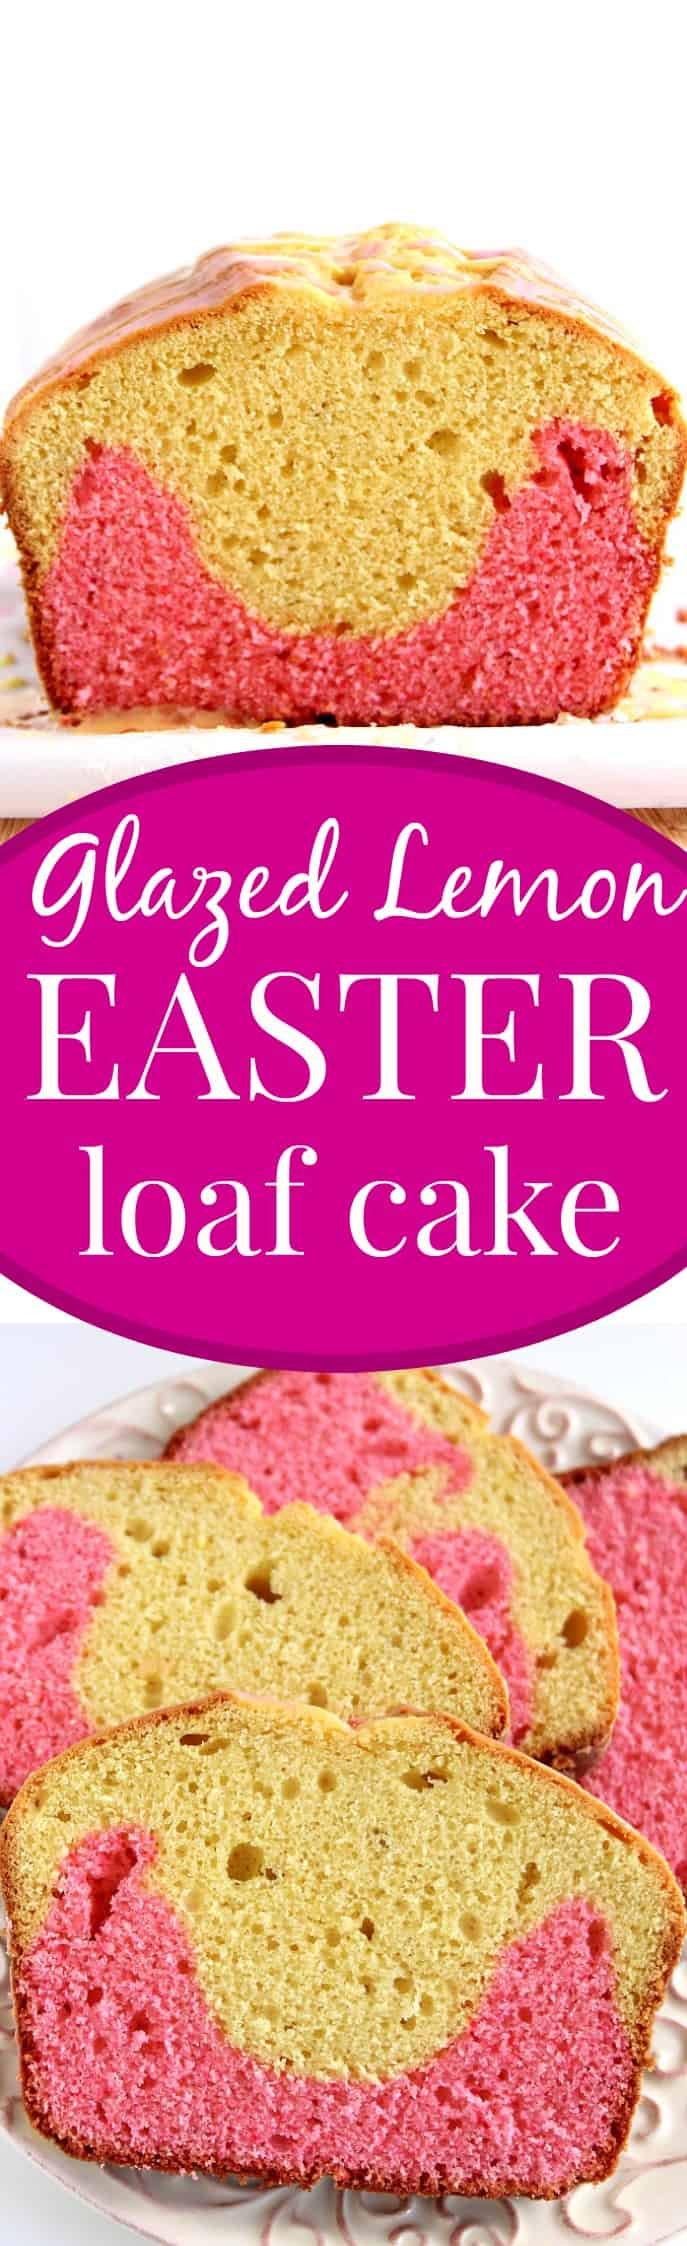 glazed lemon easter cake long Glazed Lemon Easter Loaf Cake Recipe